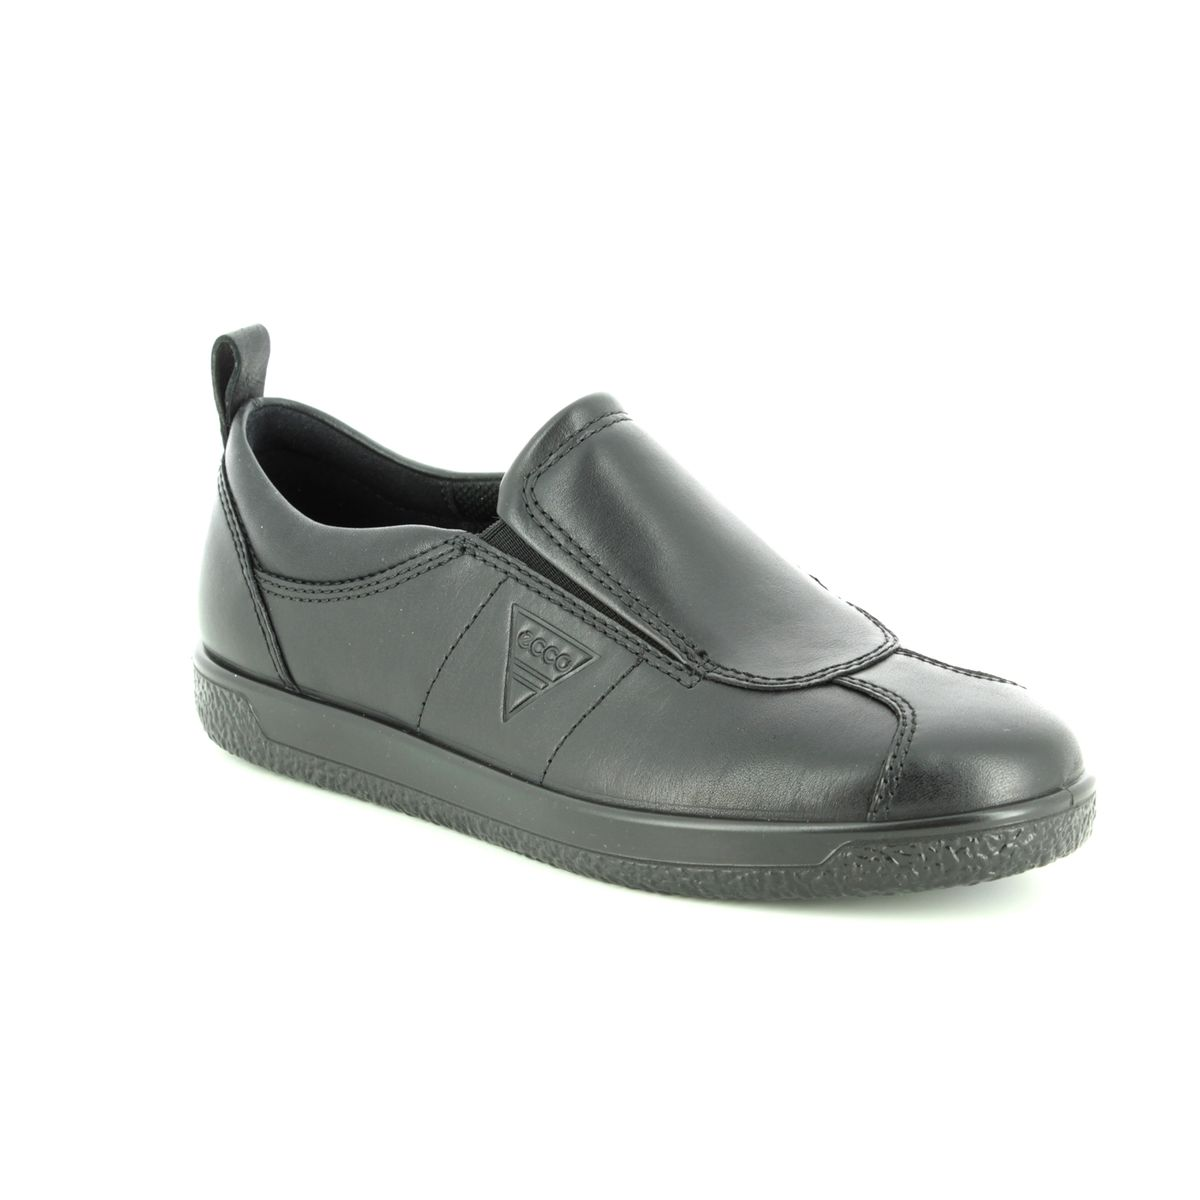 fed0465dfe 400543/01001 Soft 1 Ladies Slip-on at Begg Shoes & Bags